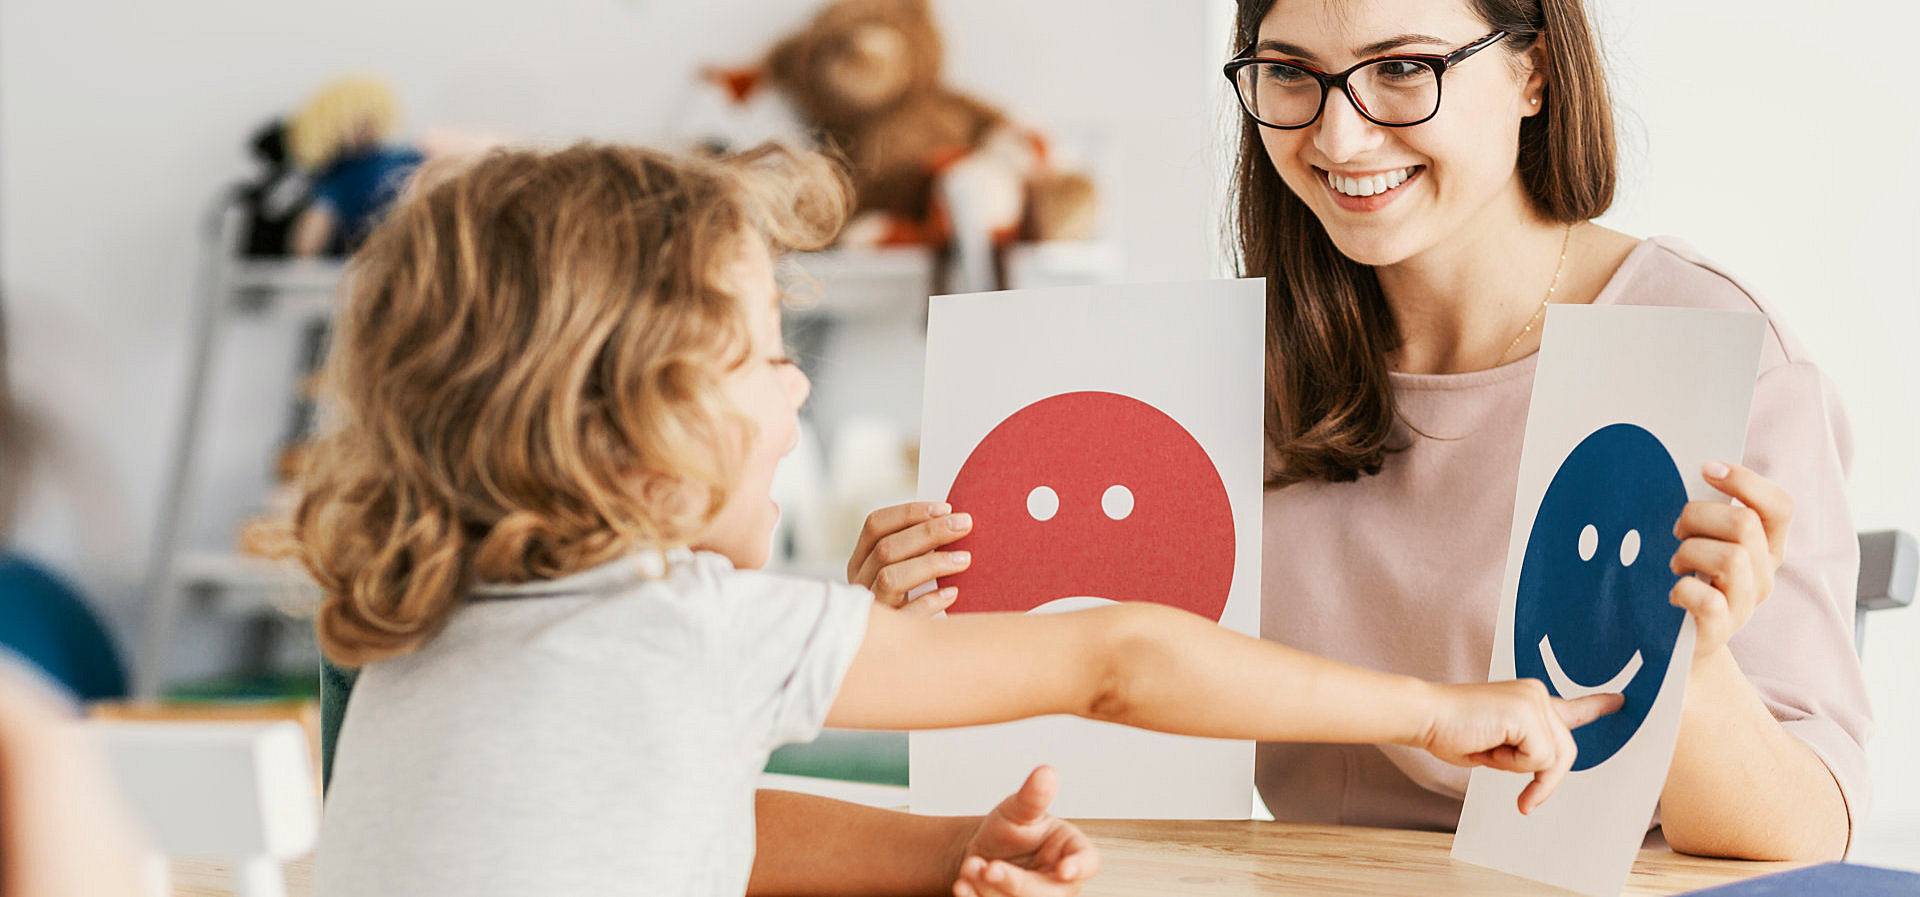 professional woman teaching the little girl smiling